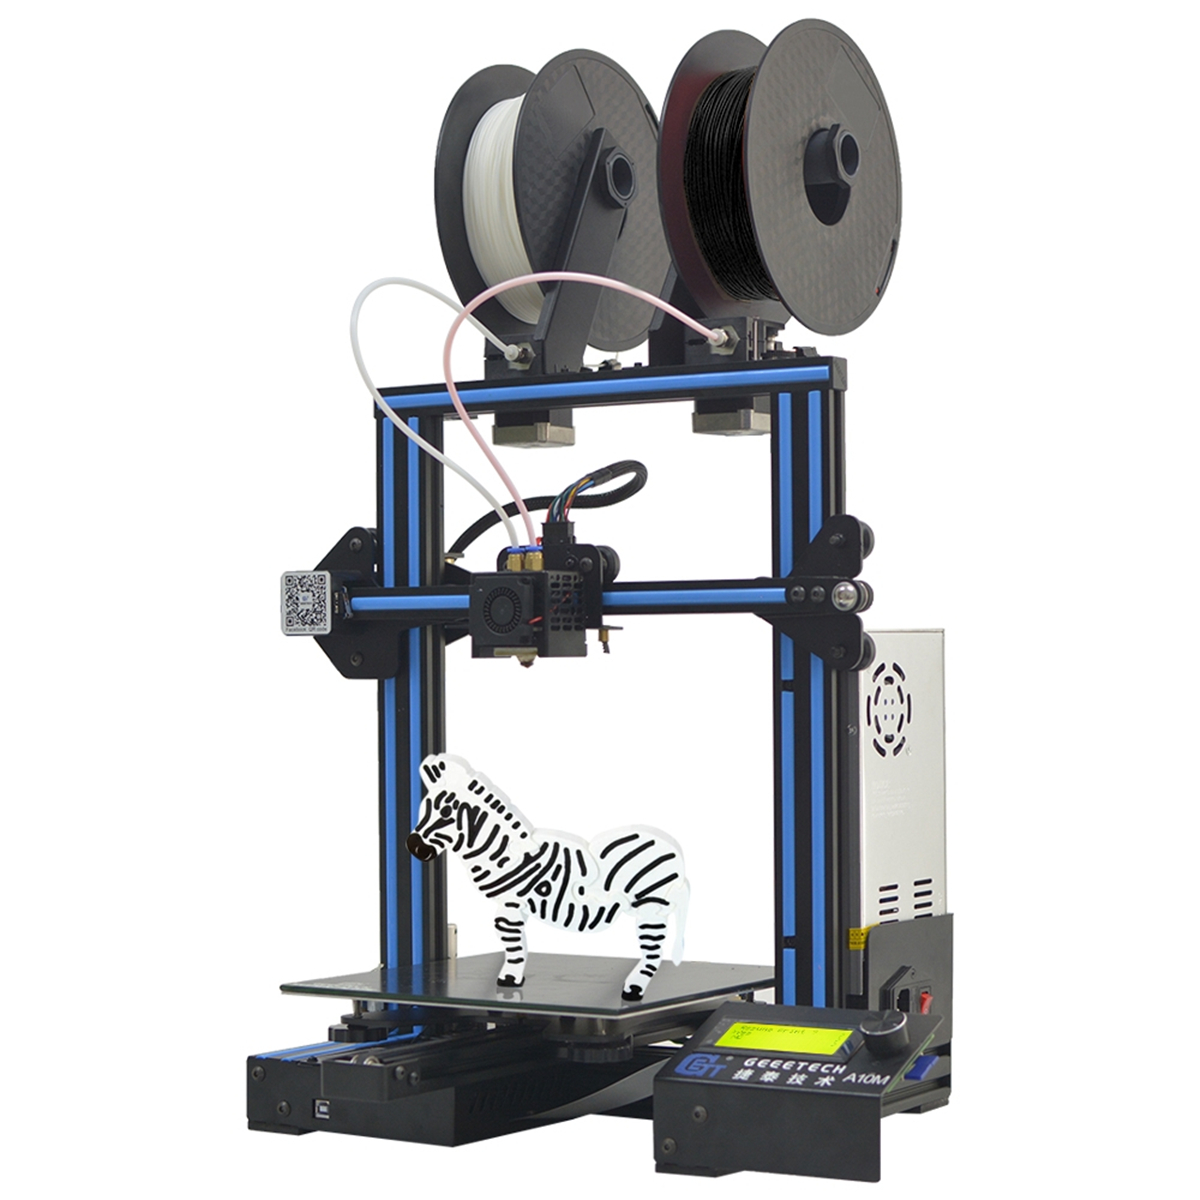 NEW A10M Mix color I3 3D Printer Printing Size With Dual Extruder Filament Detector Power Resume